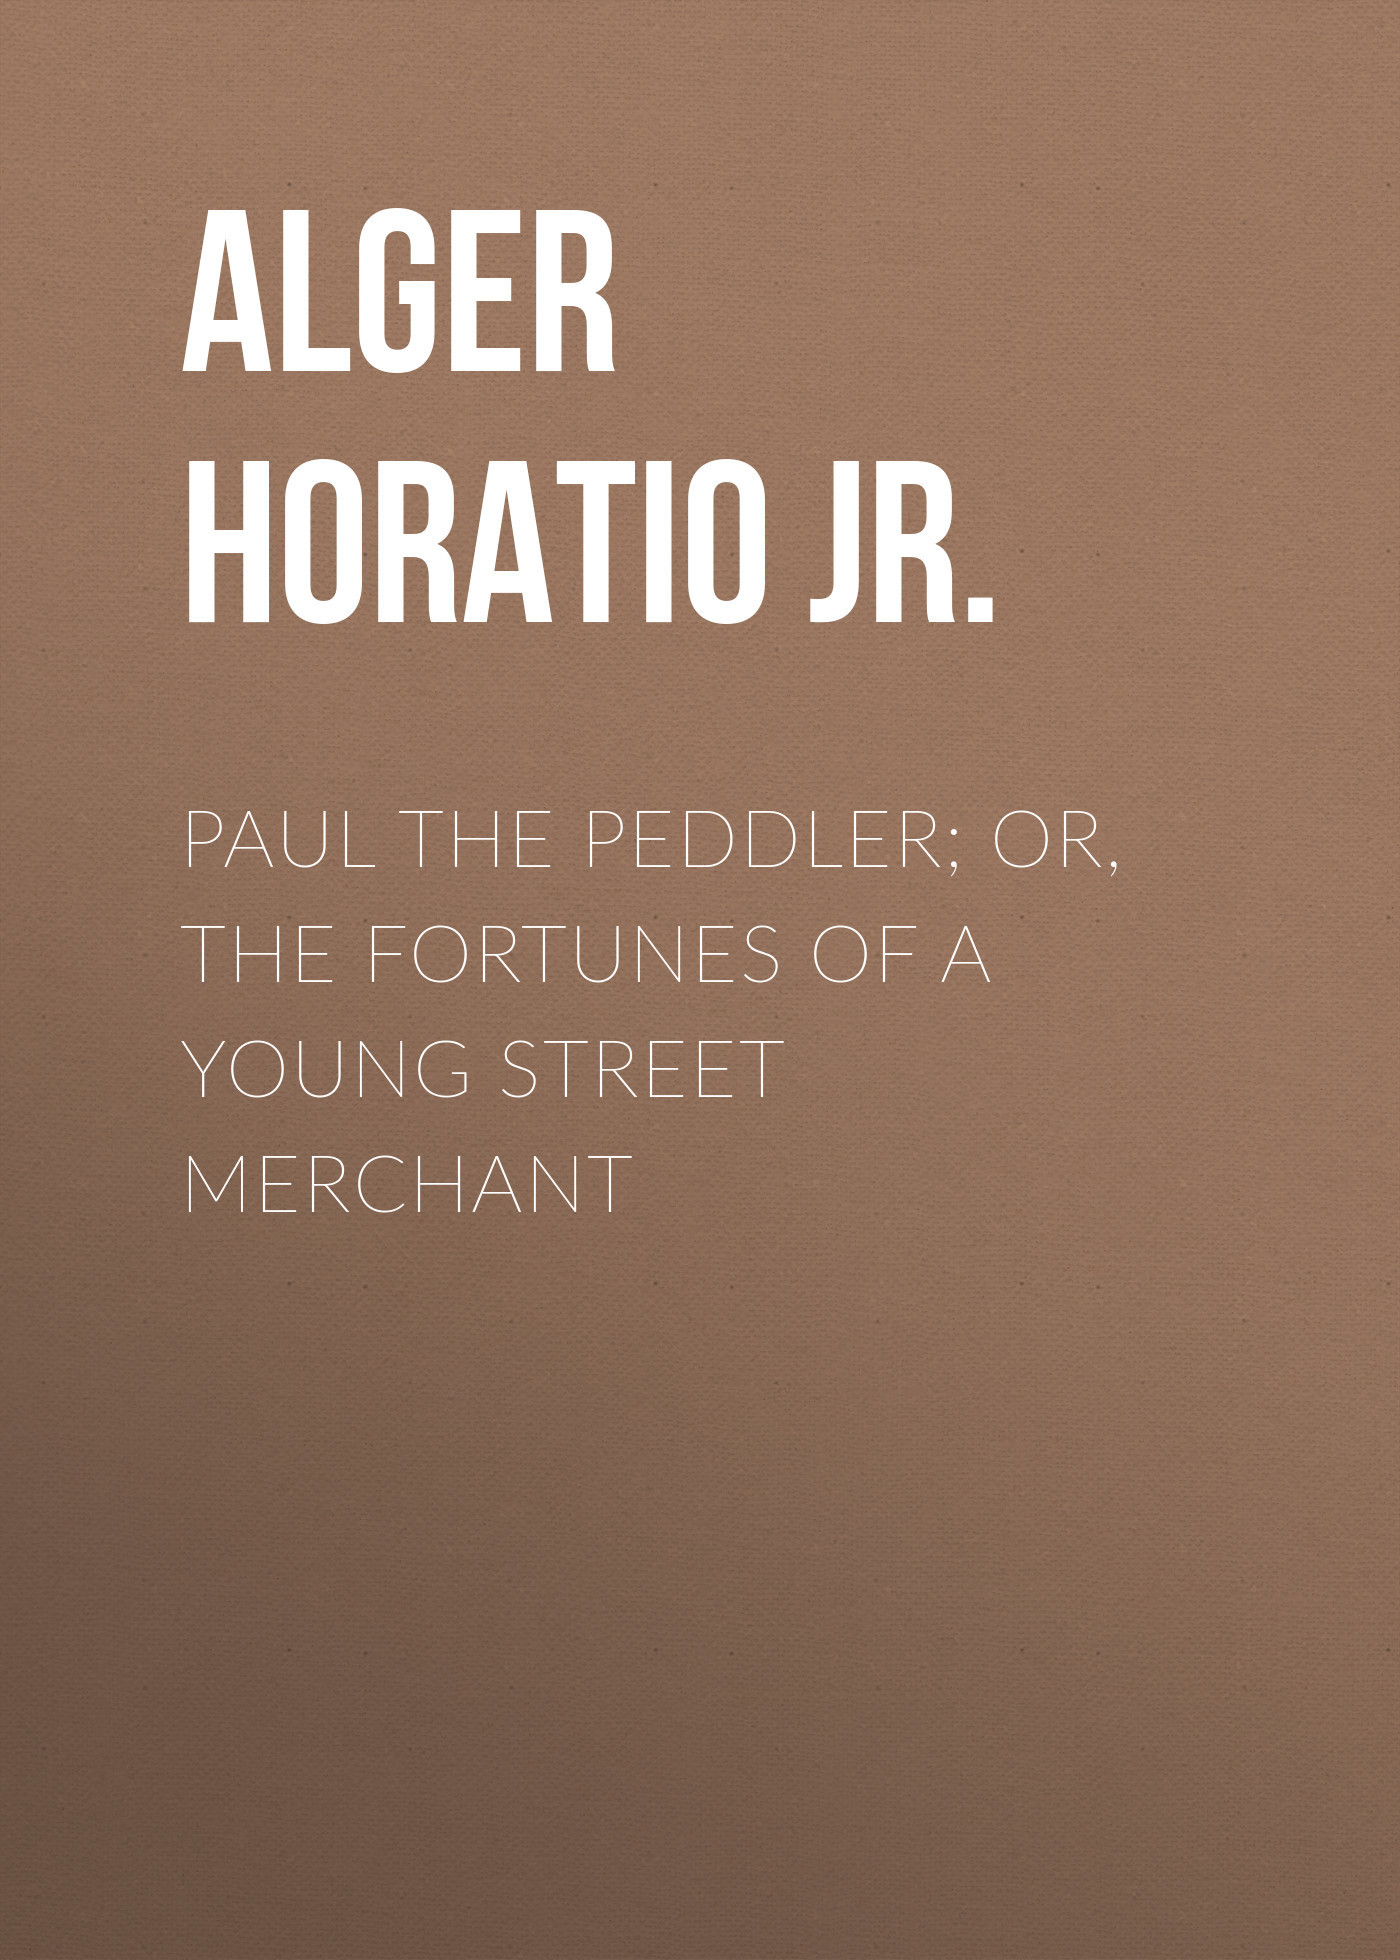 Alger Horatio Jr. Paul the Peddler; Or, The Fortunes of a Young Street Merchant horatio alger jr bernard brooks adventures the experience of a plucky boy